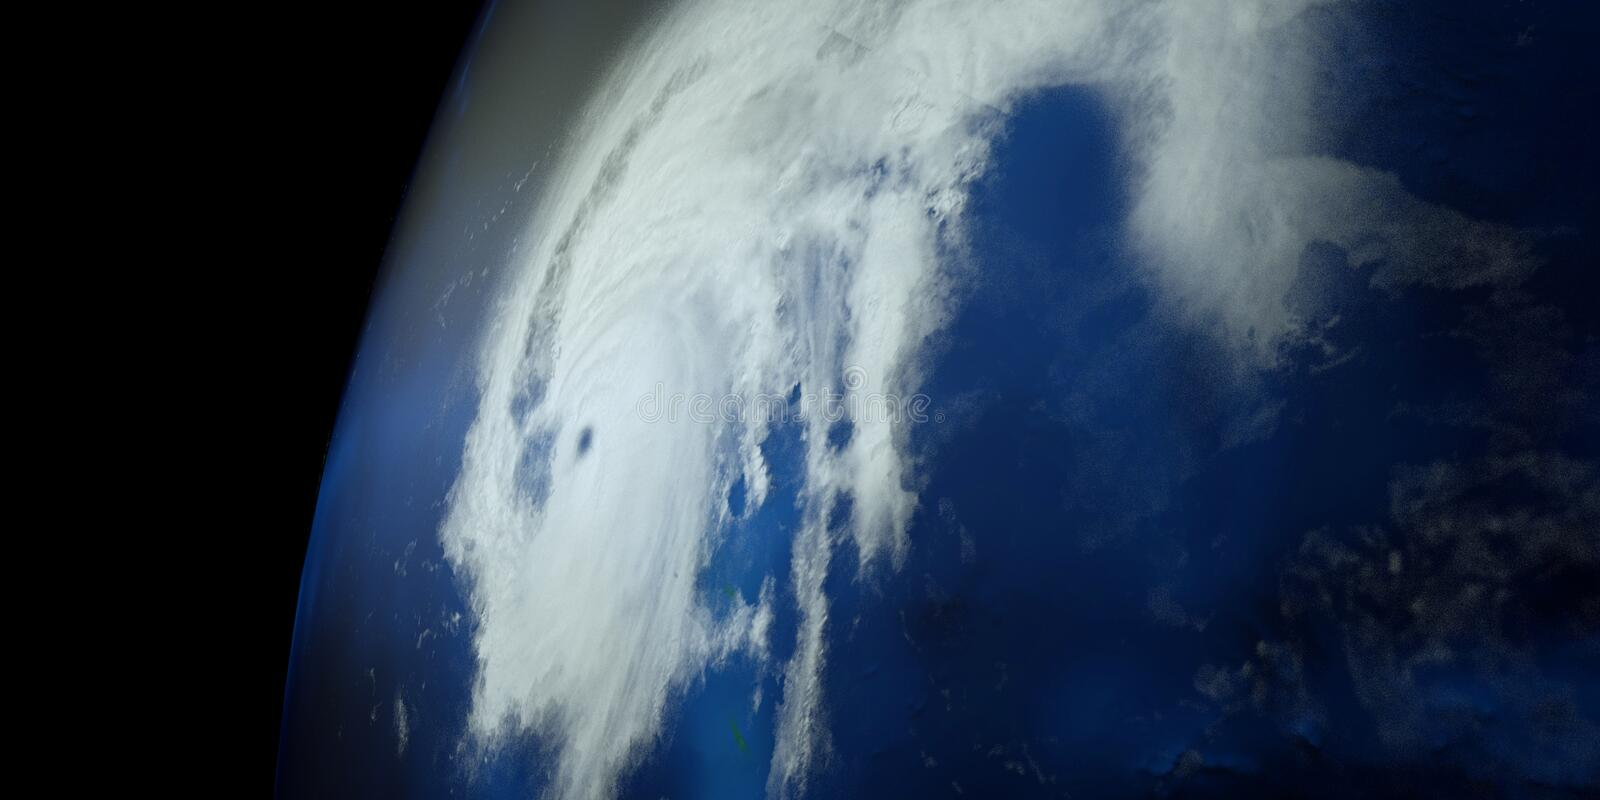 Extremely detailed and realistic high resolution 3D illustration of a Hurricane. Shot from Space. Elements of this image are furni. Extremely detailed and stock images